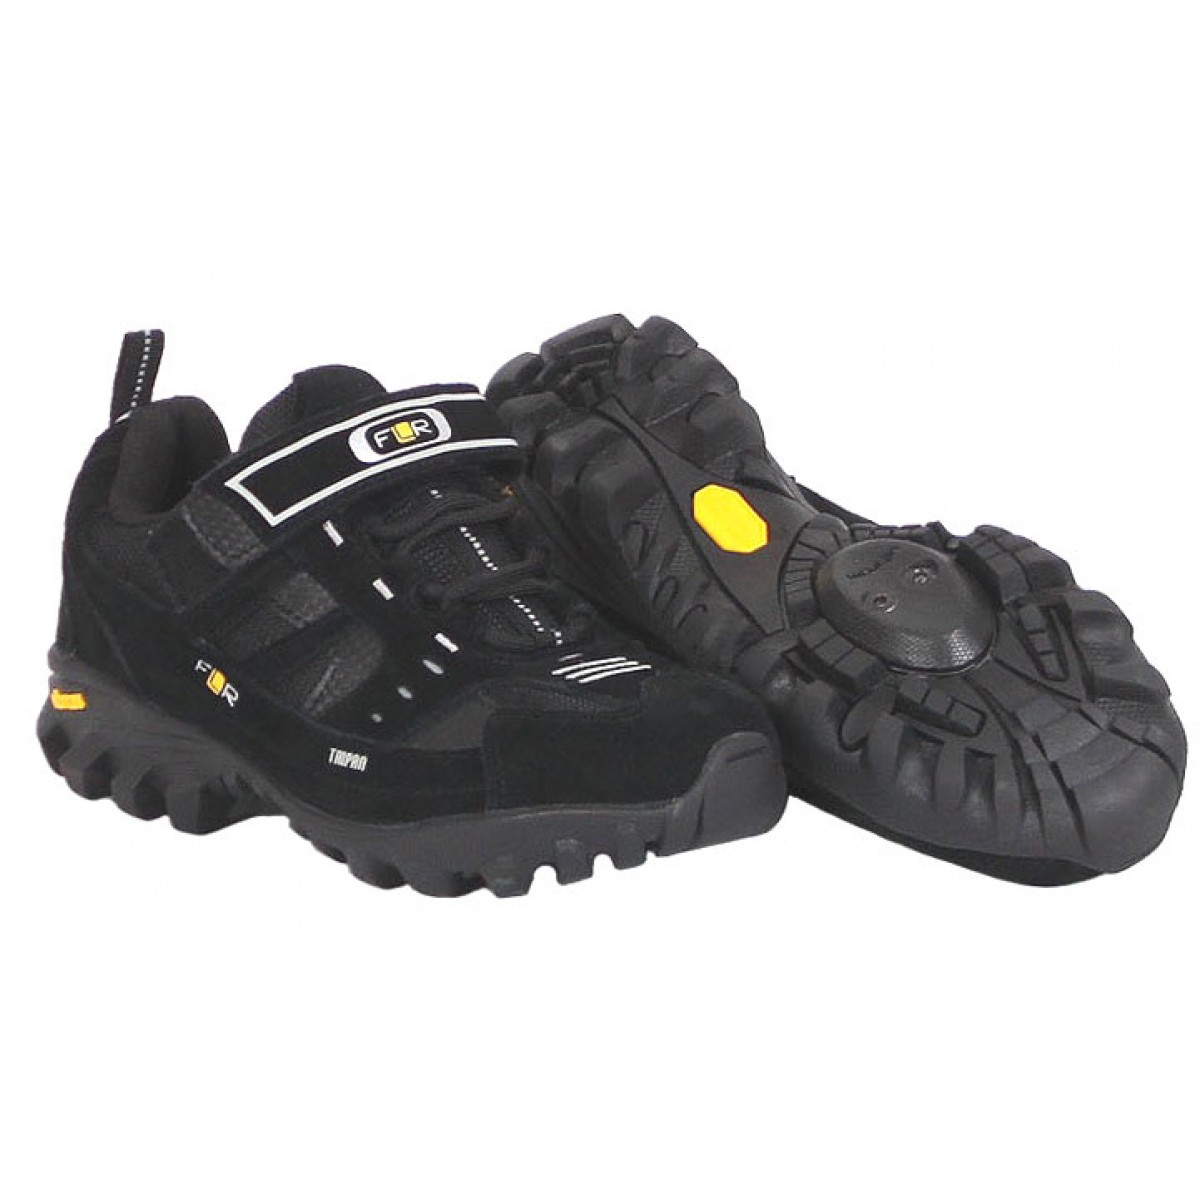 Specialized MTB Shoes | eBay